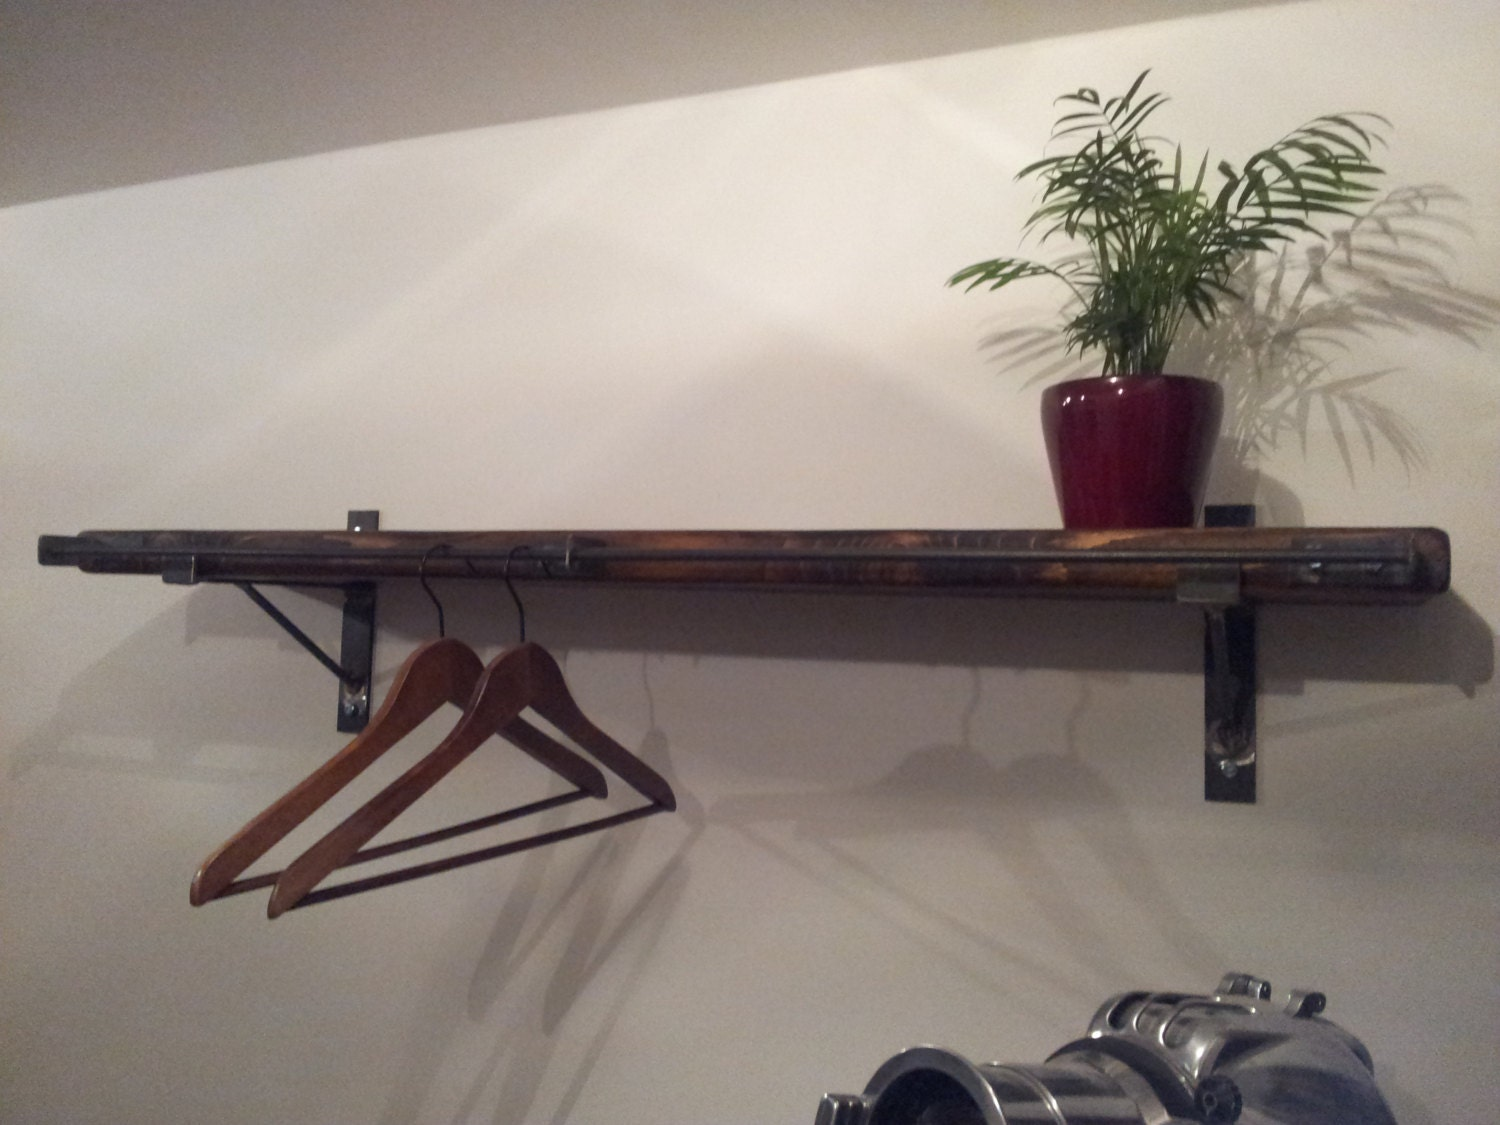 l lumber reclaimed barnwood wide brackets hardware mantel shelf inch with heavy black duty bracket steel brace